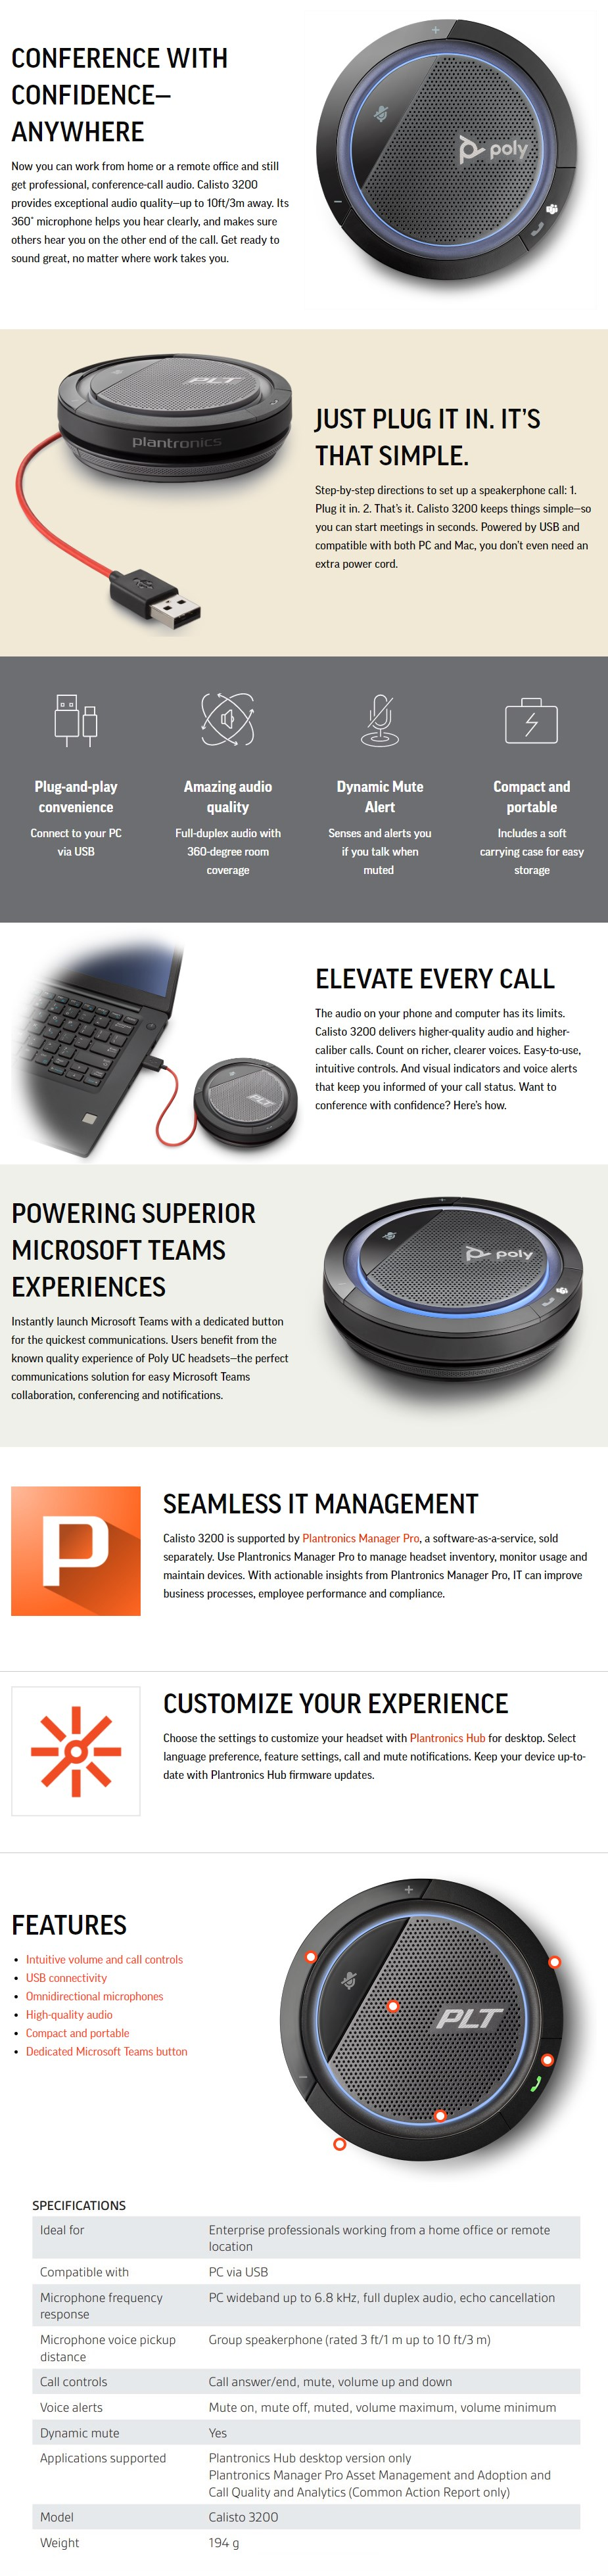 Plantronics Calisto 3200 UC USB-C Portable Speakerphone - Microsoft Teams - Overview 1